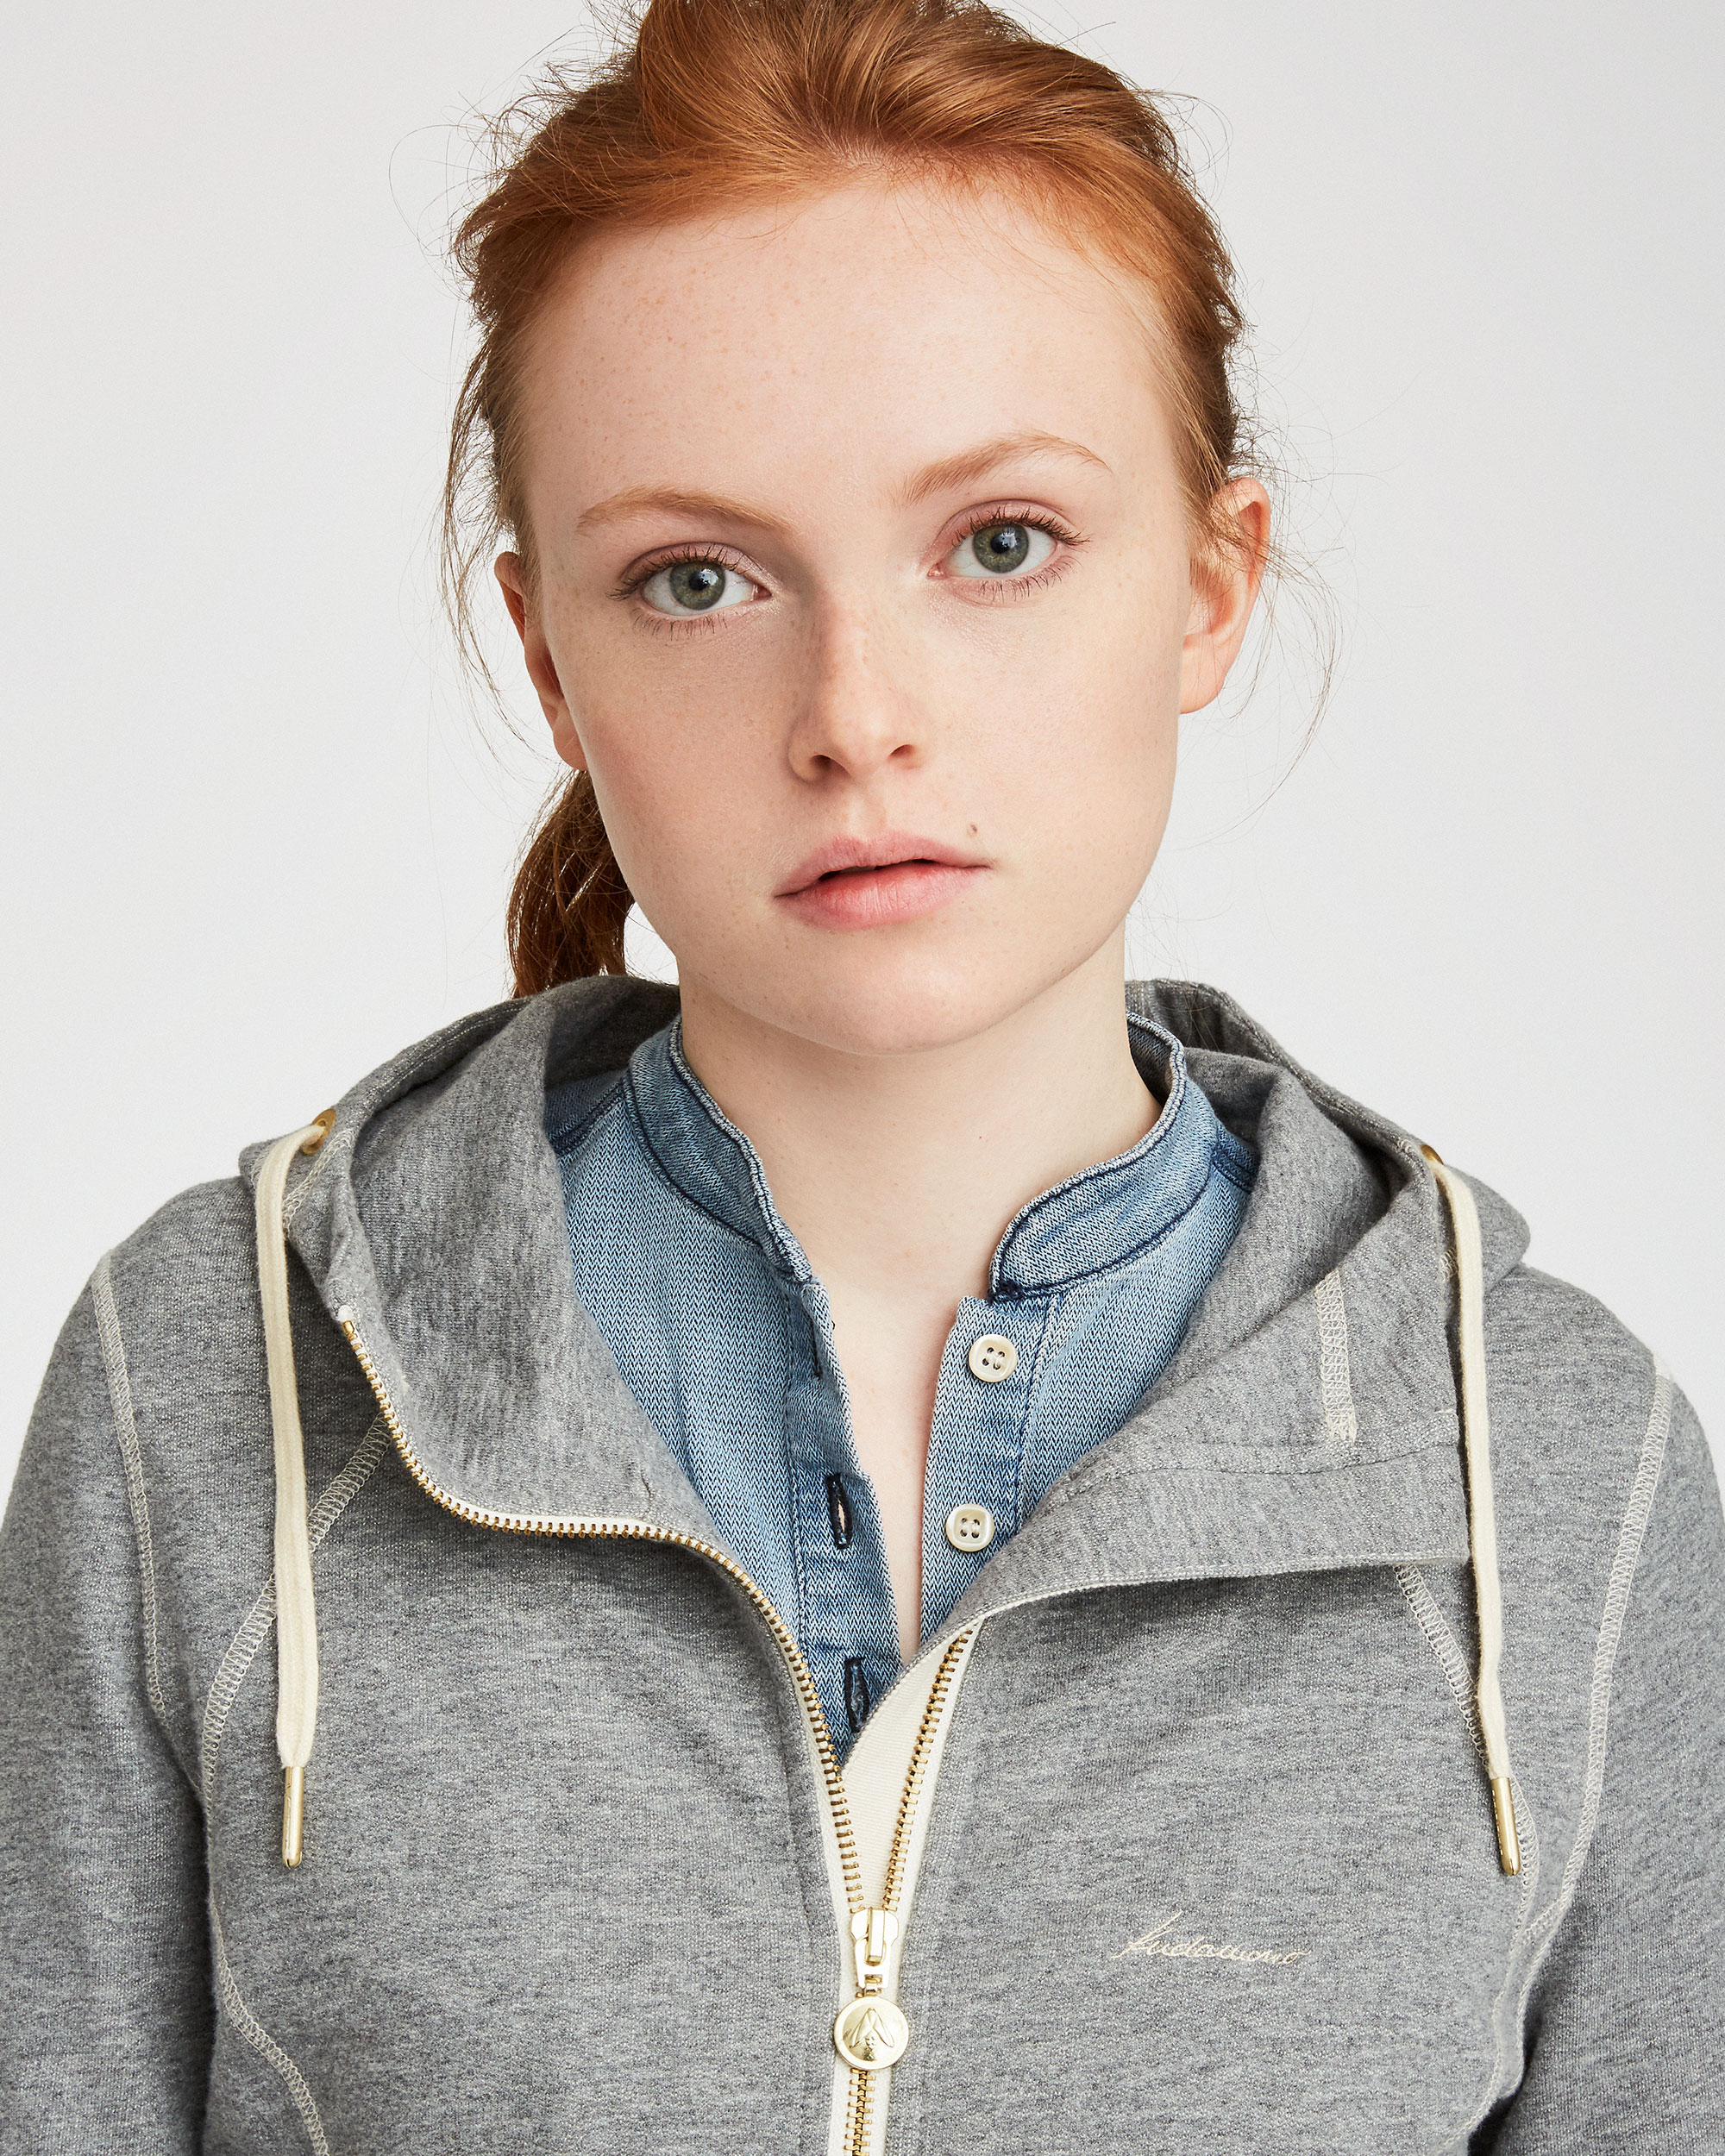 Portrait Model mit Sweatjacke Smilla